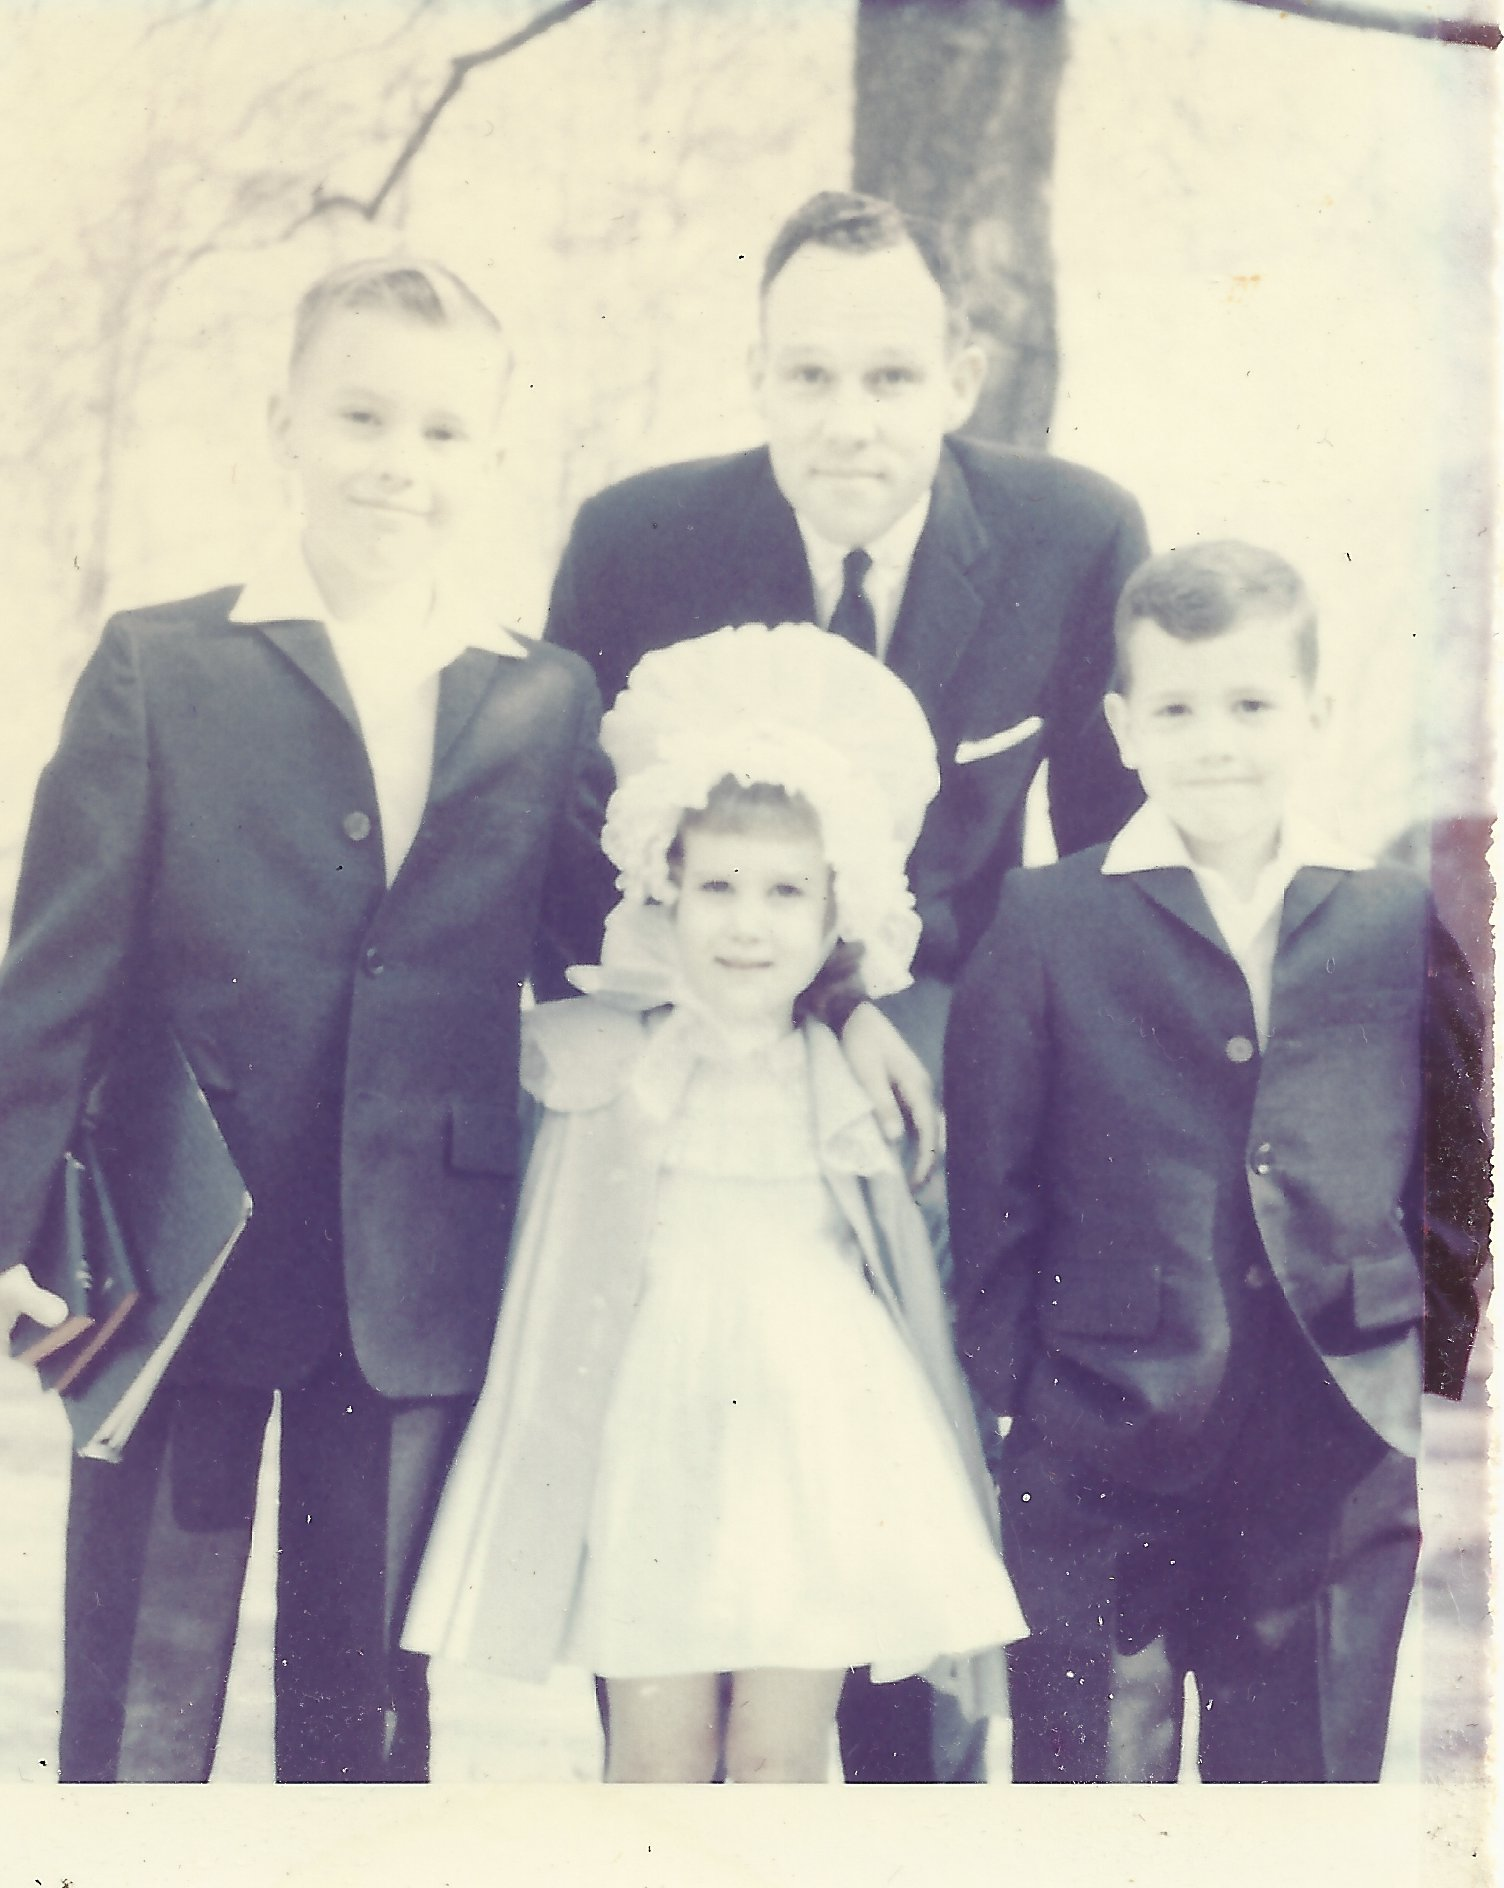 My brothers Adam and Spencer, my Dad and me at Easter, circa 1959 or 1960